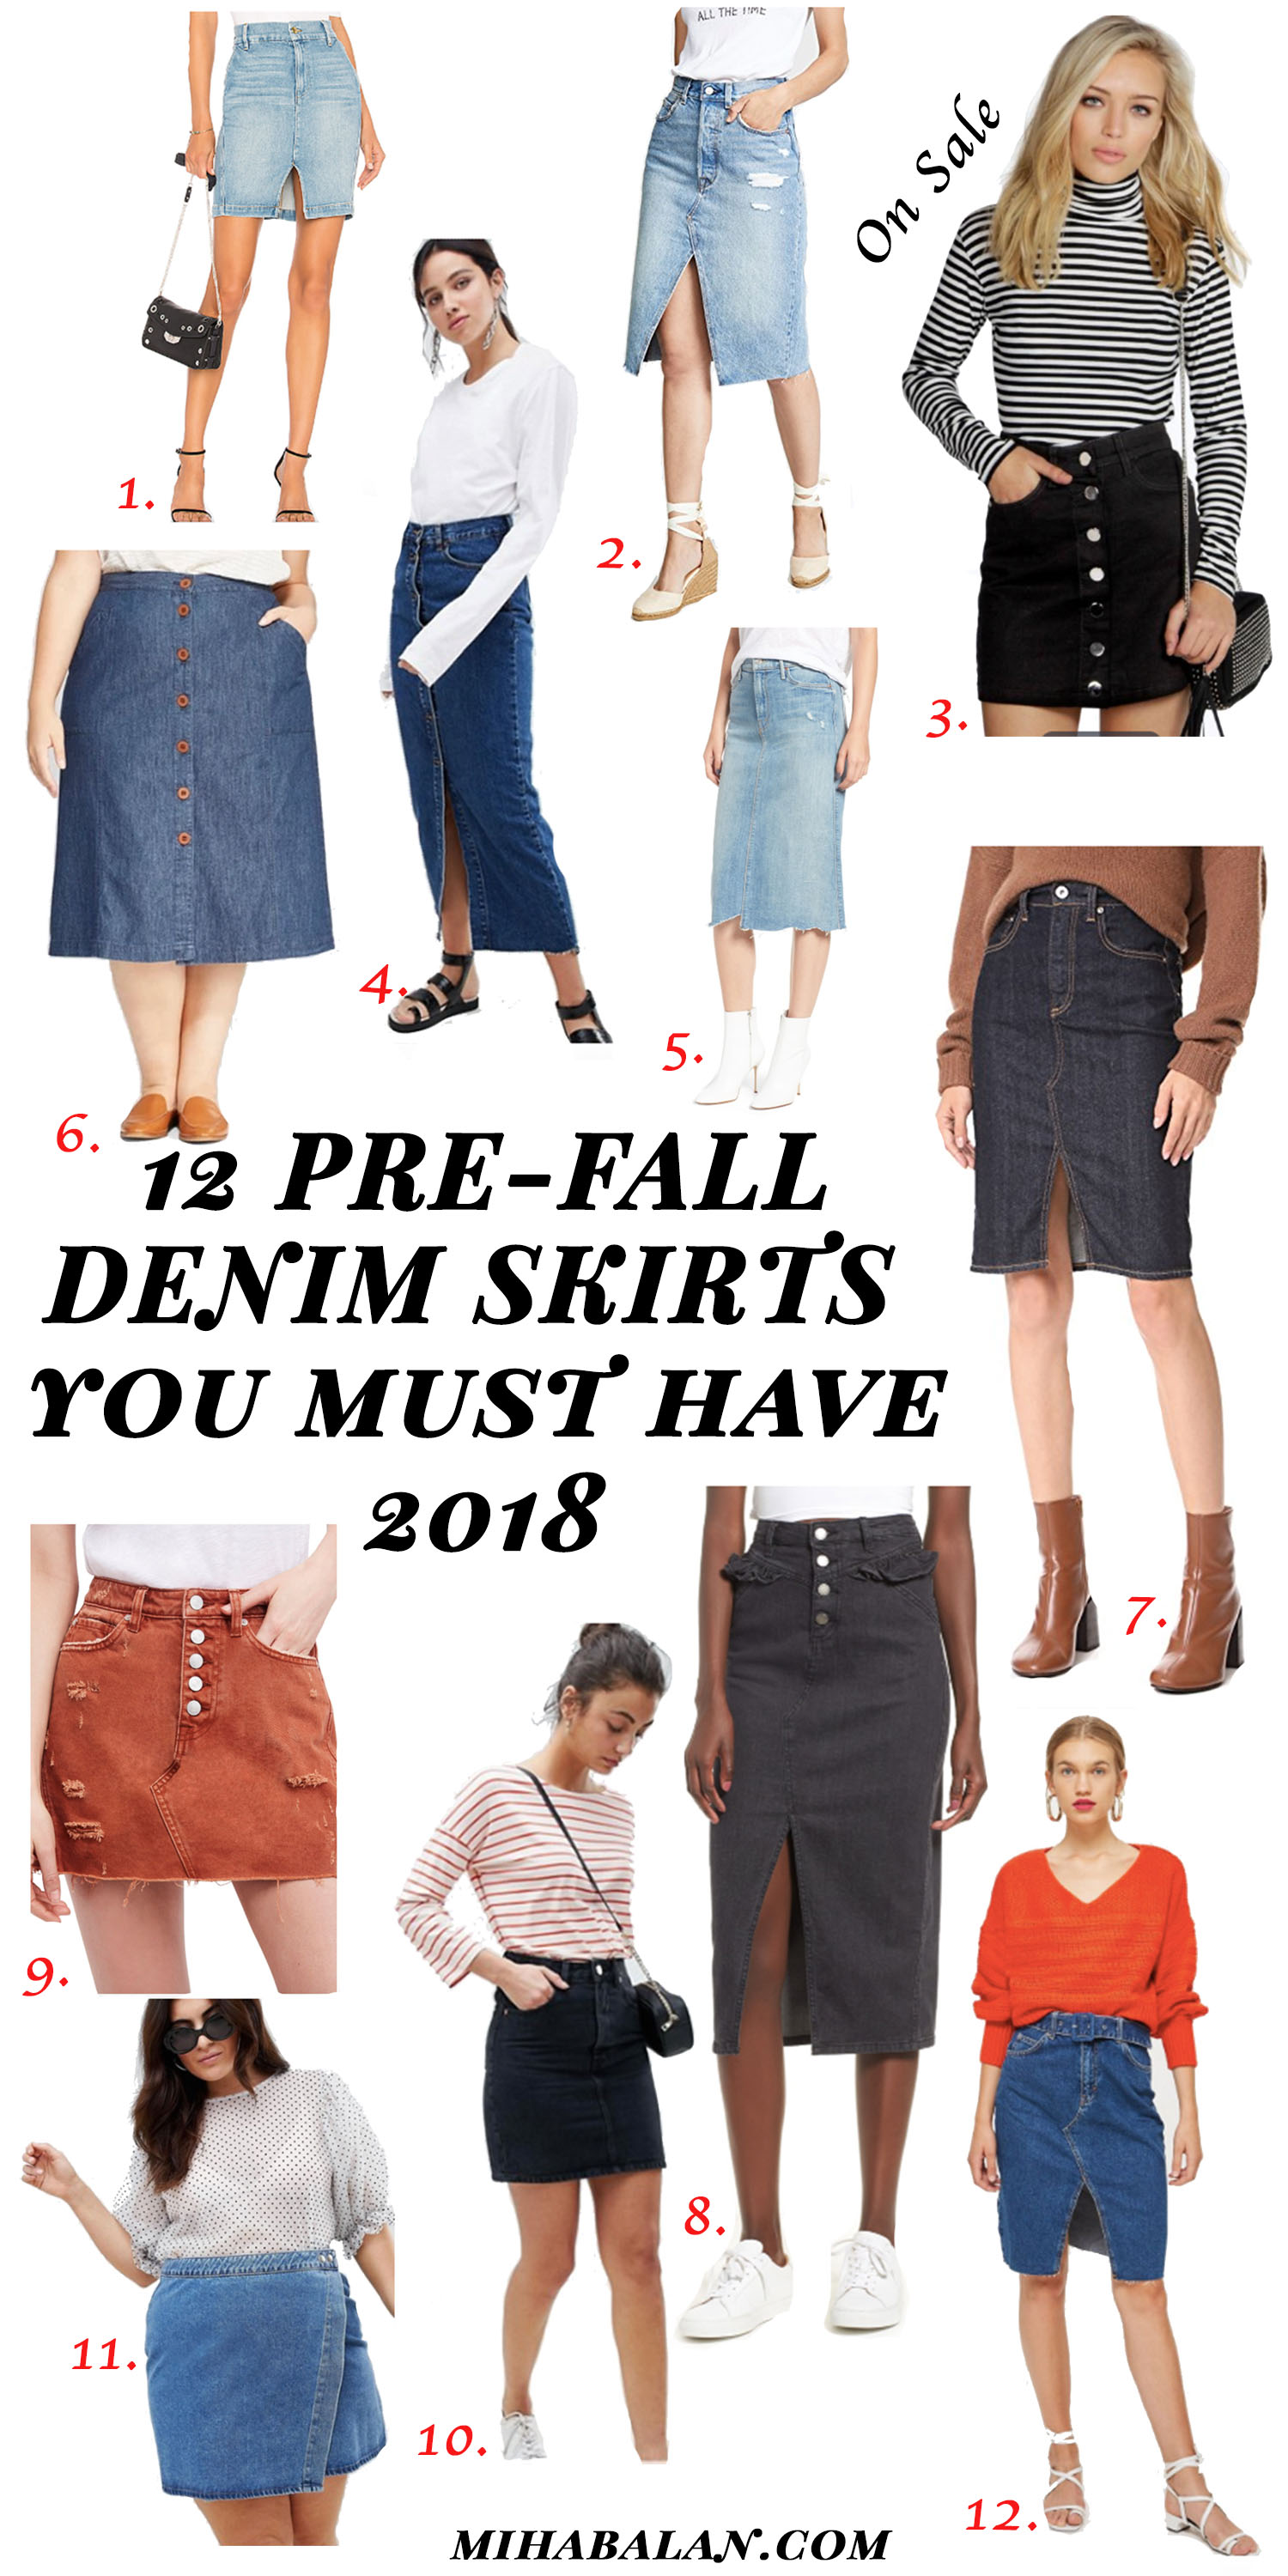 the pre-fal denim skirts you must have this season2018, denim outfit, work wear outfit, fall fashion, fall outfit, what to wear in fall, fall work wear outfit, scandinavian style, denim wear